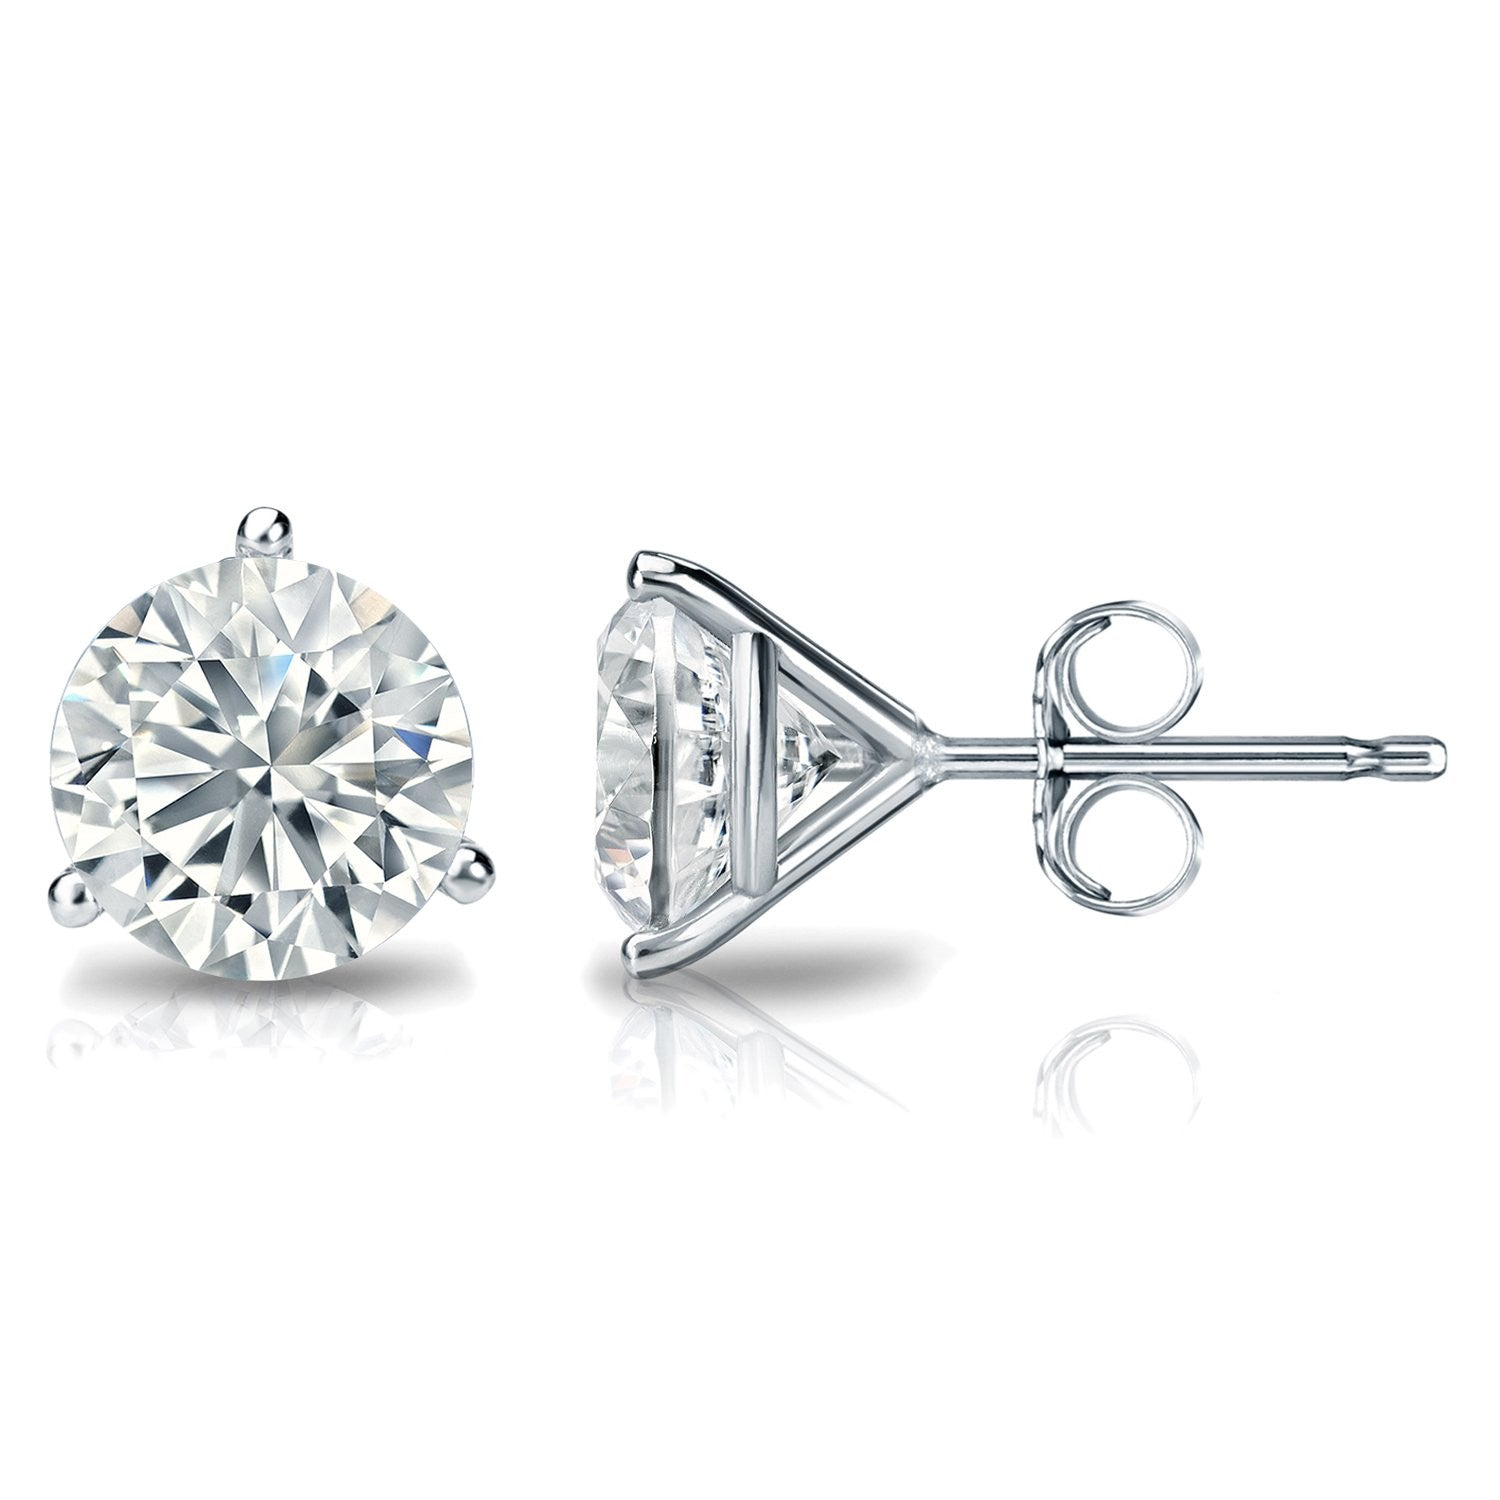 1½ Carat Round 14K White Gold 3 Prong Martini Set Diamond Solitaire Stud Earrings (Classic Quality)